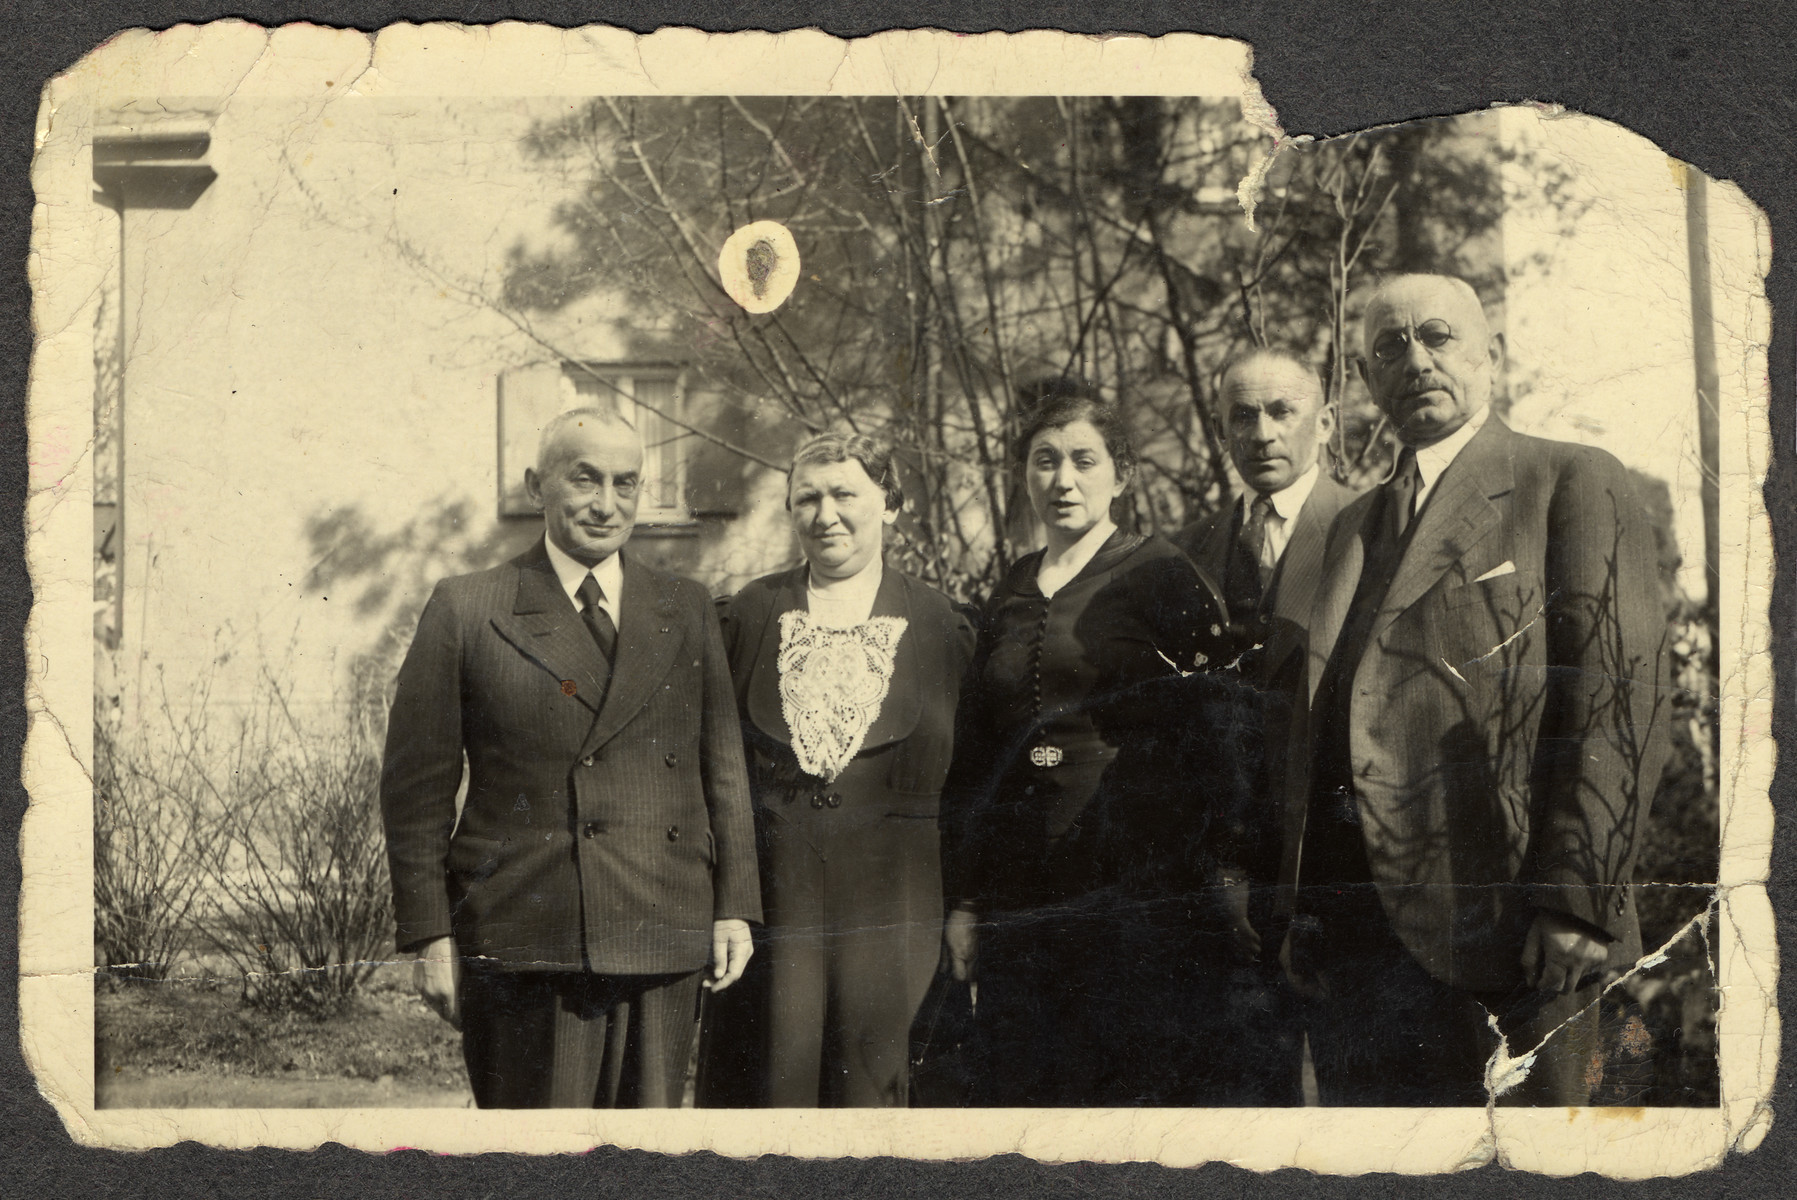 The Hirschfeld and Einstein families pose for a photograph.    Pictured are Ellen Seligman's maternal grandparents, the parents of her cousin Liesel Fischer, and an uncle.  The grandparents immigrated to the United States, but members of the Einstein family perished in the Holocaust.